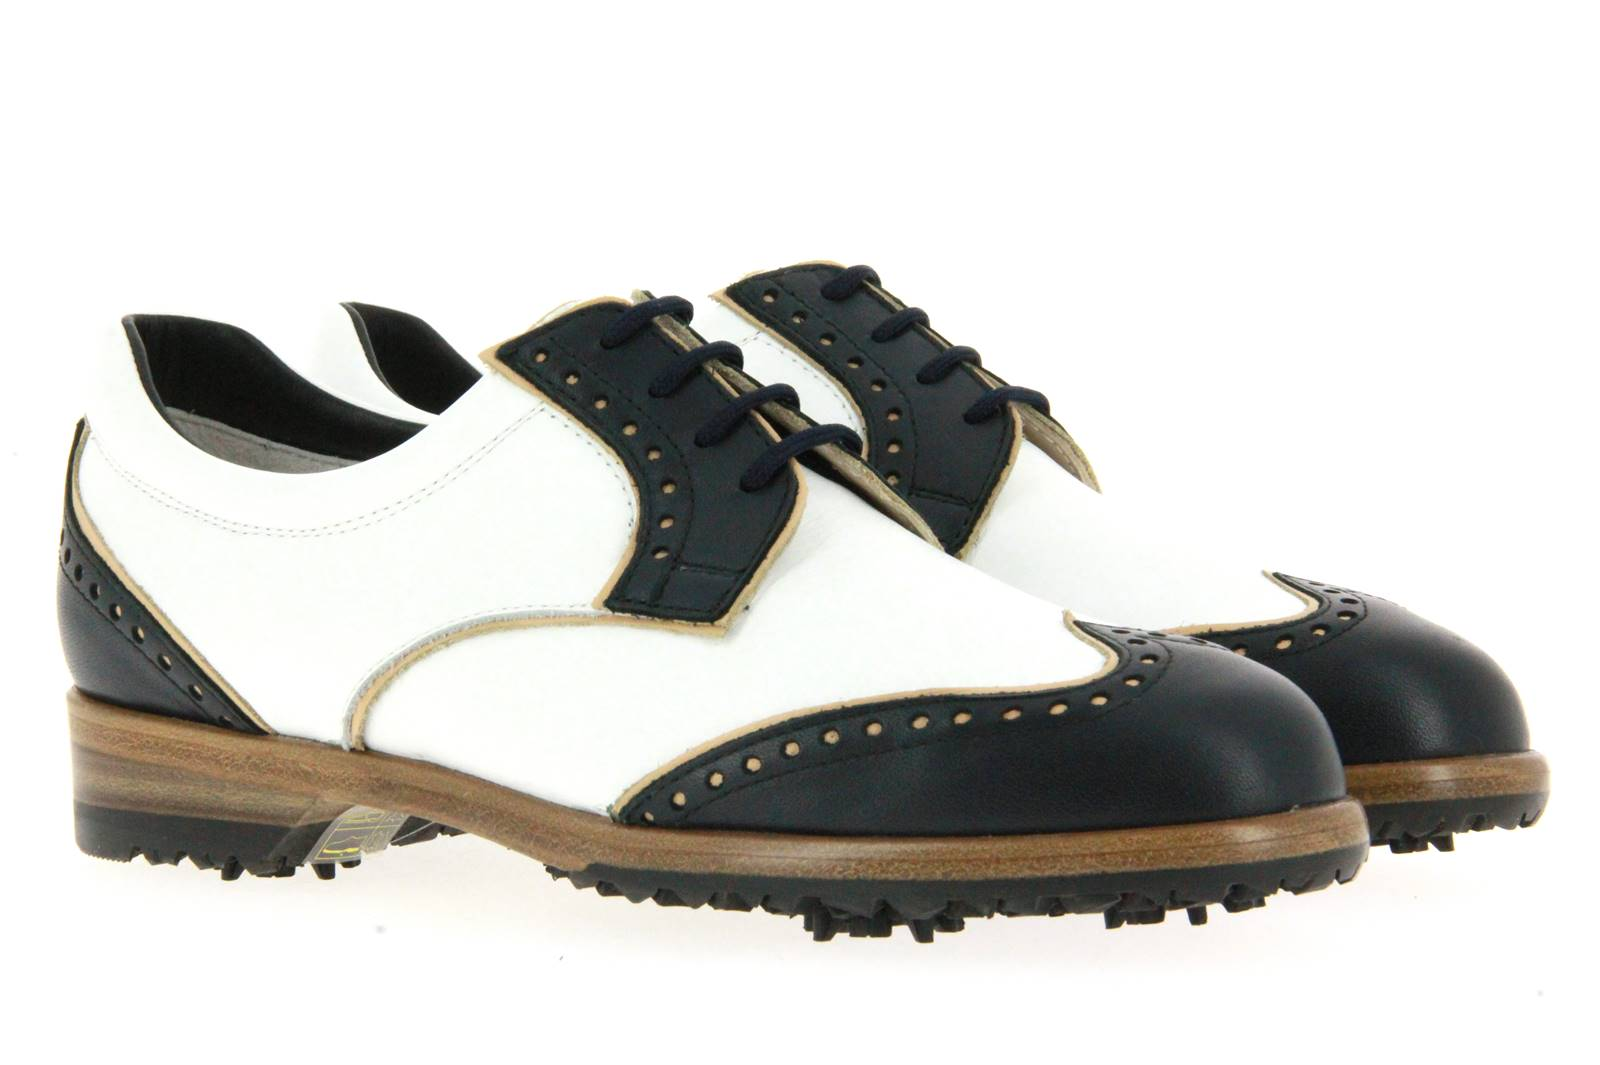 Tee Golf Shoes women's - golf shoe SALLY BLU BIANCO